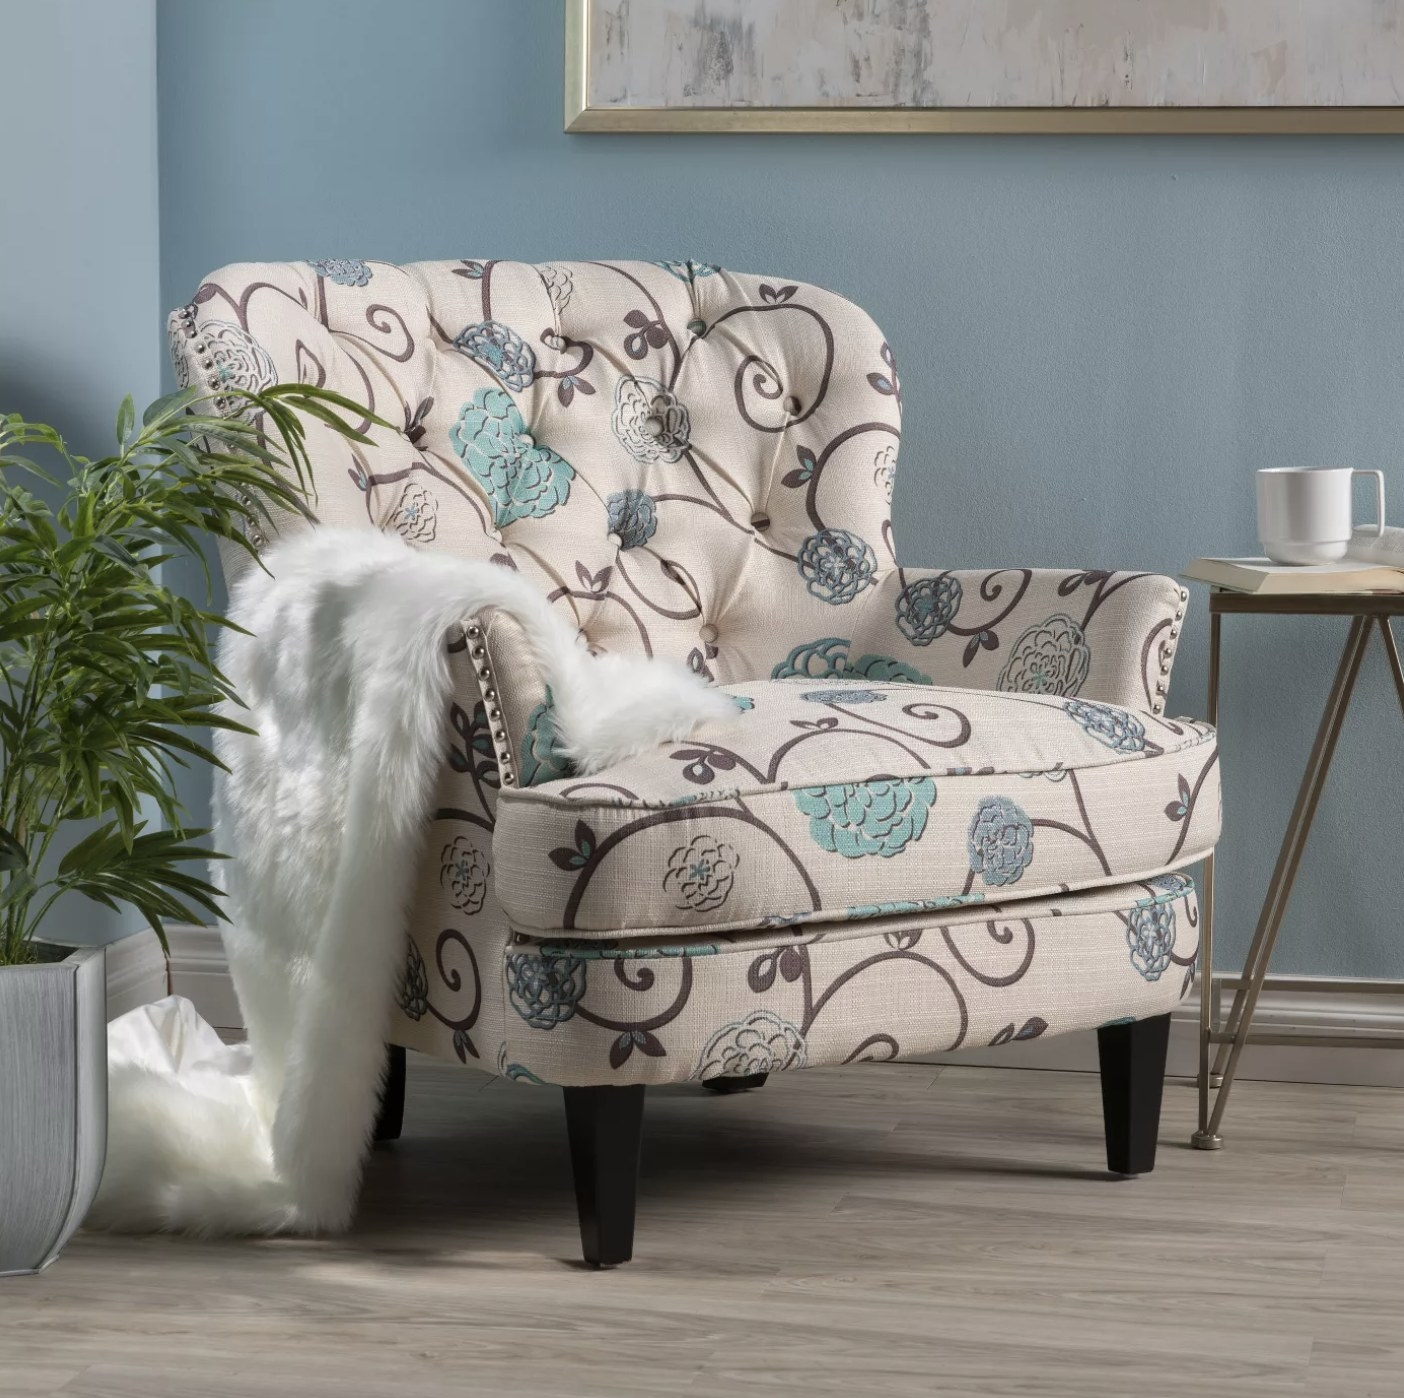 A cream accent chair with a floral pattern